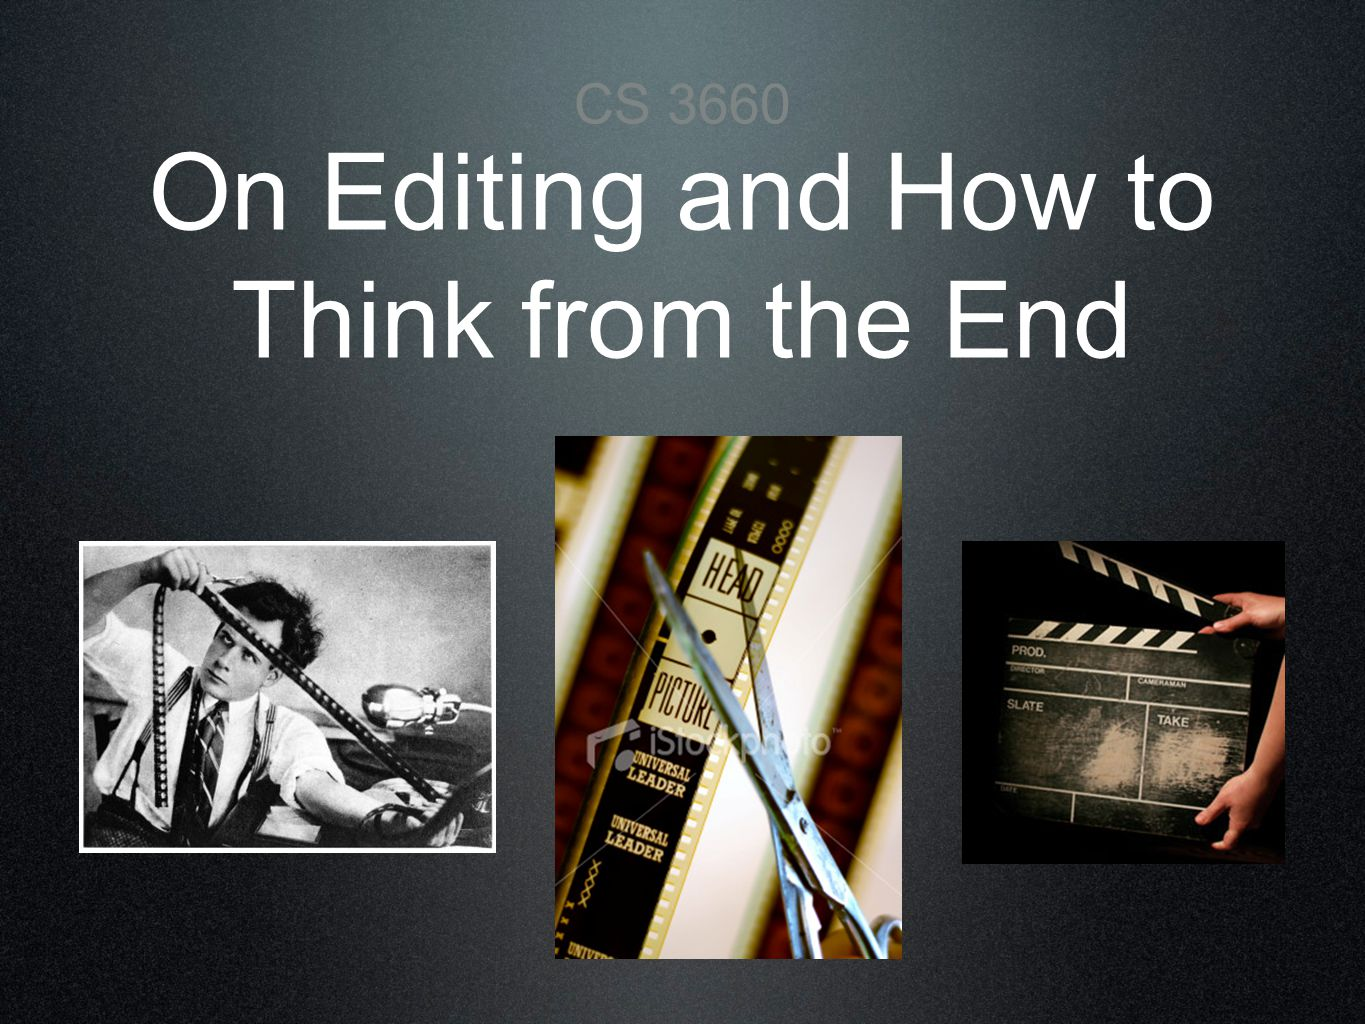 On Editing and How to Think from the End CS 3660